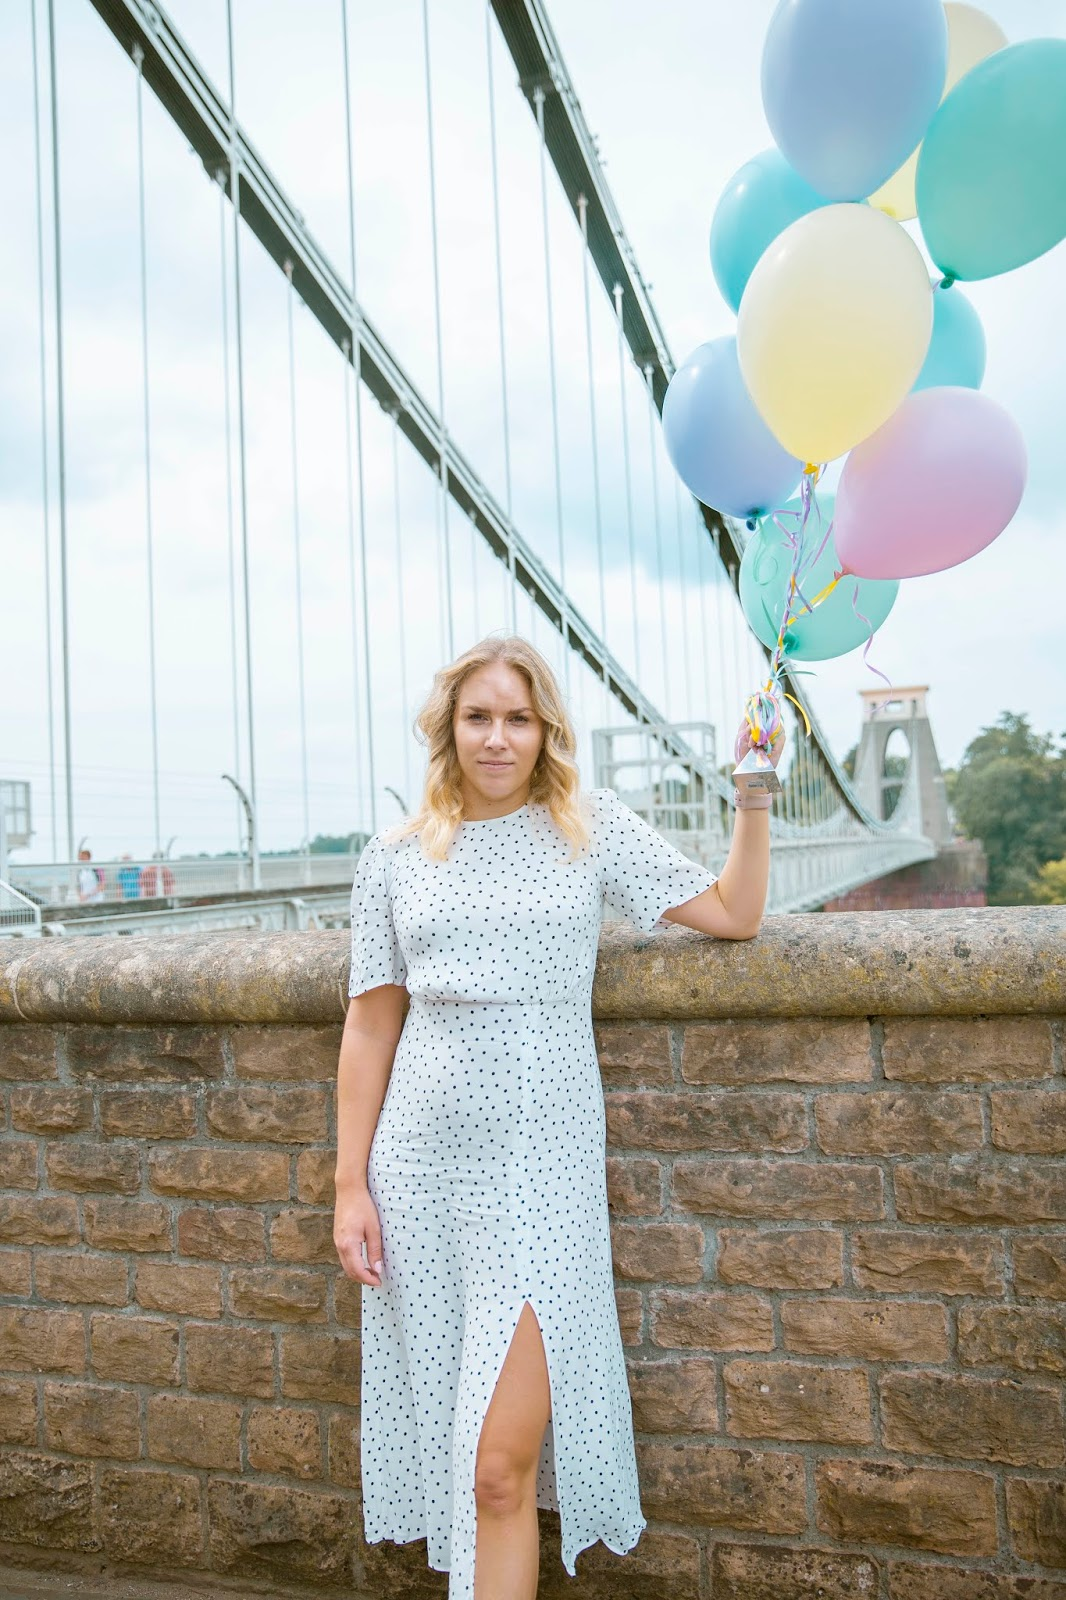 Rachel Emily holding pastel coloured balloons in a white dress by the Clifton Suspension Bridge, Bristol